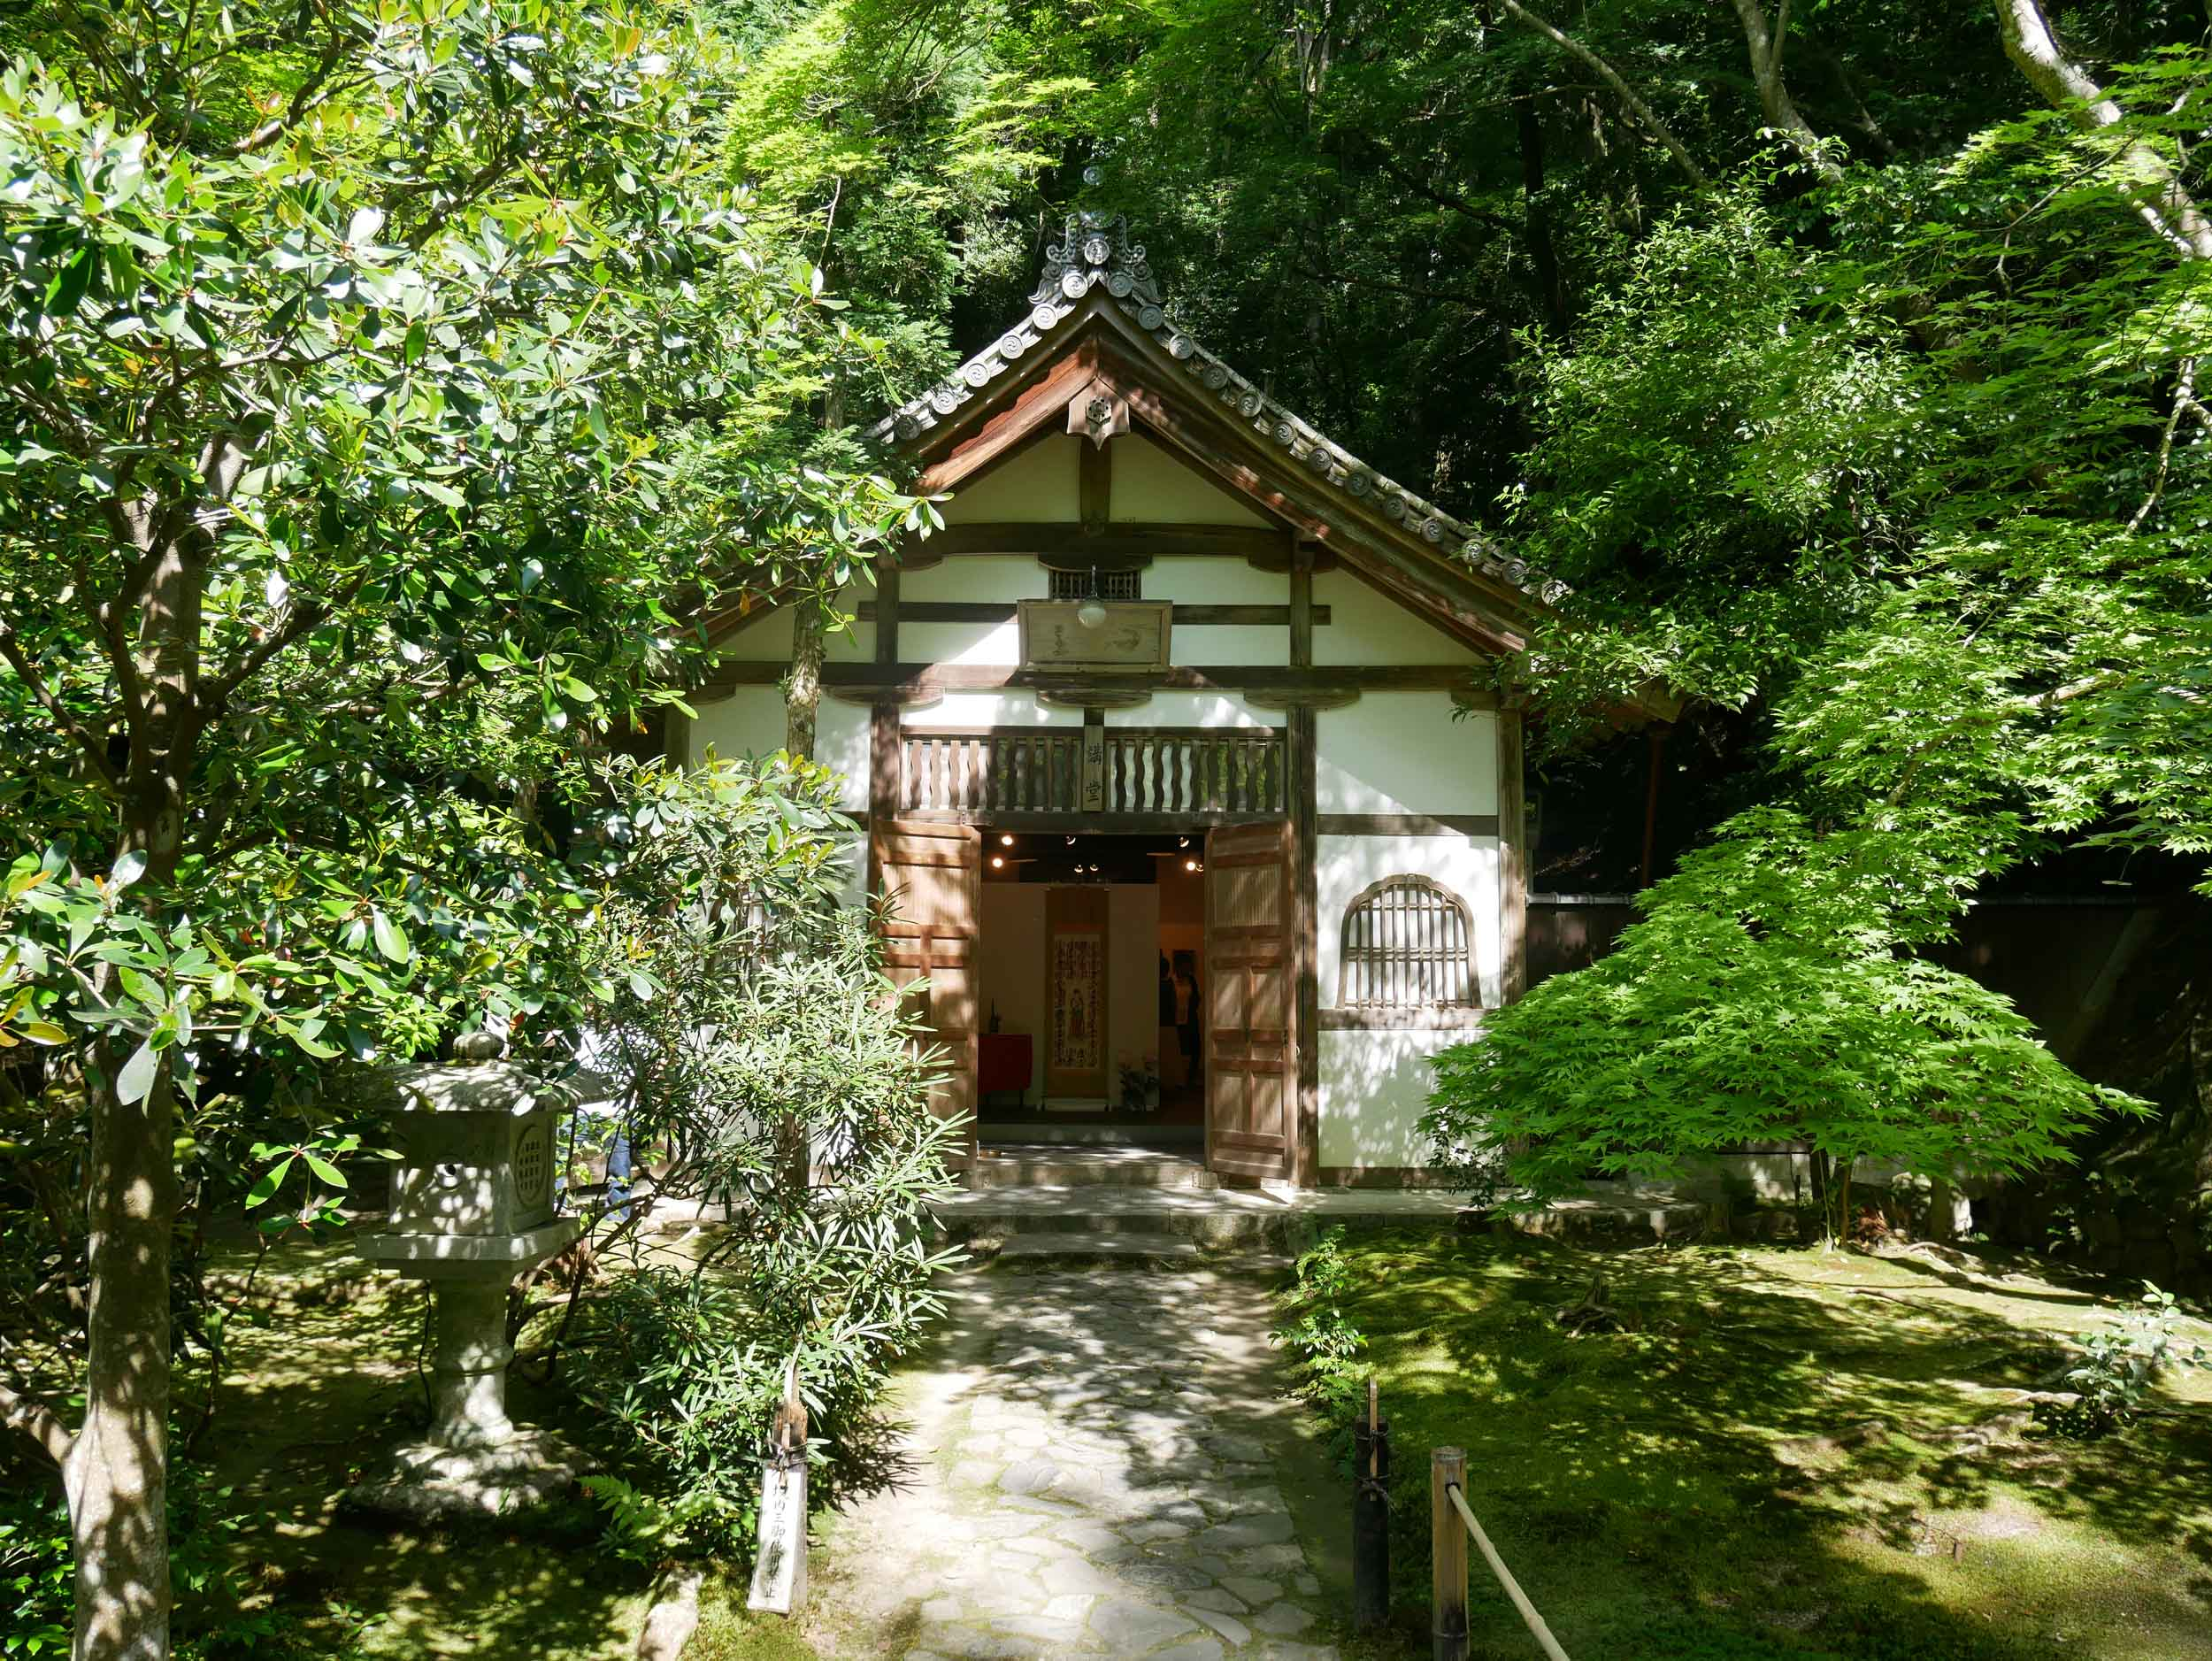 Honen-in temple complex is set back within the woods and begs contemplation.